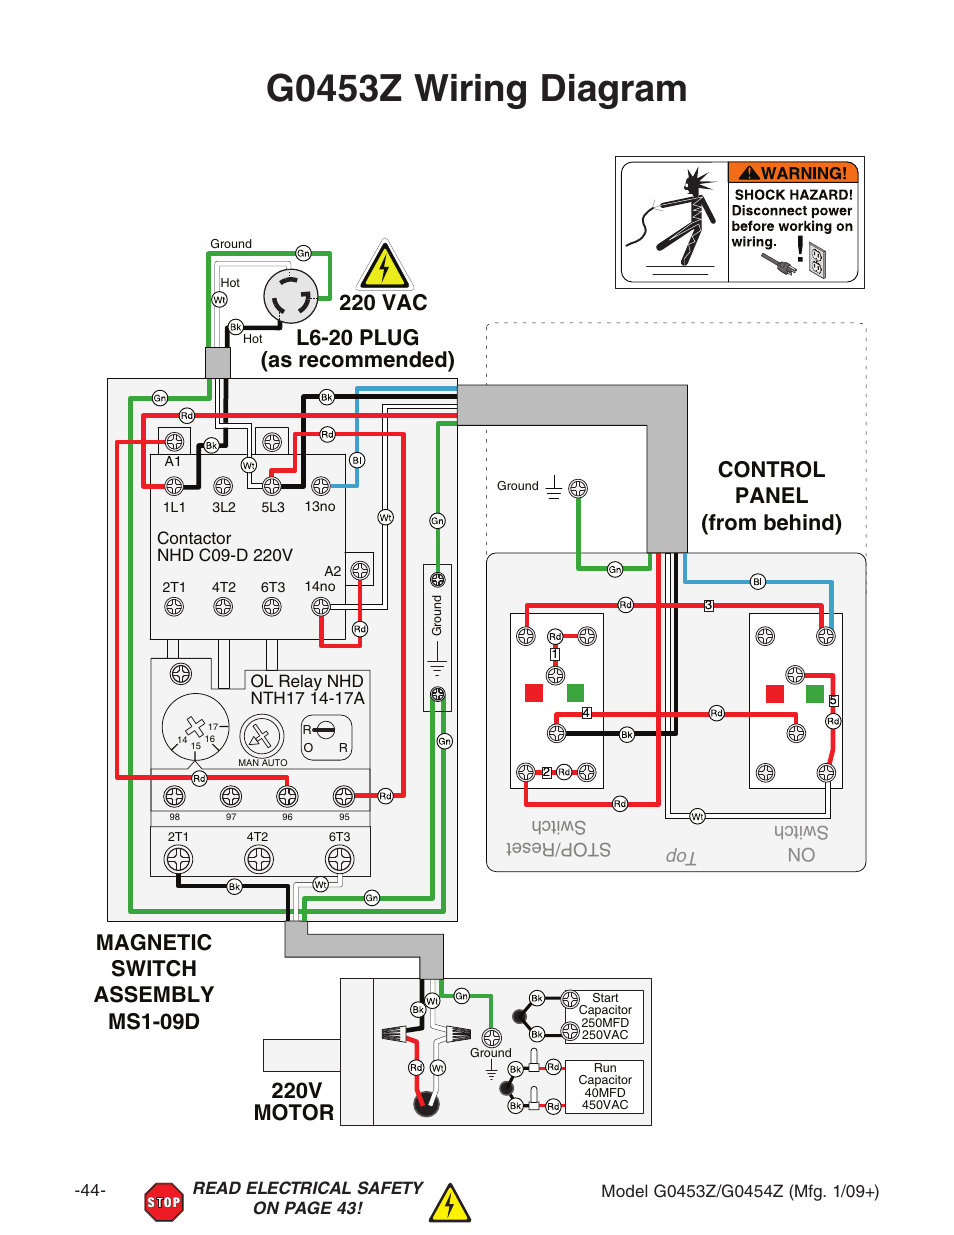 G0453z wiring diagram, 220v motor | Grizzly G0453PX User ...